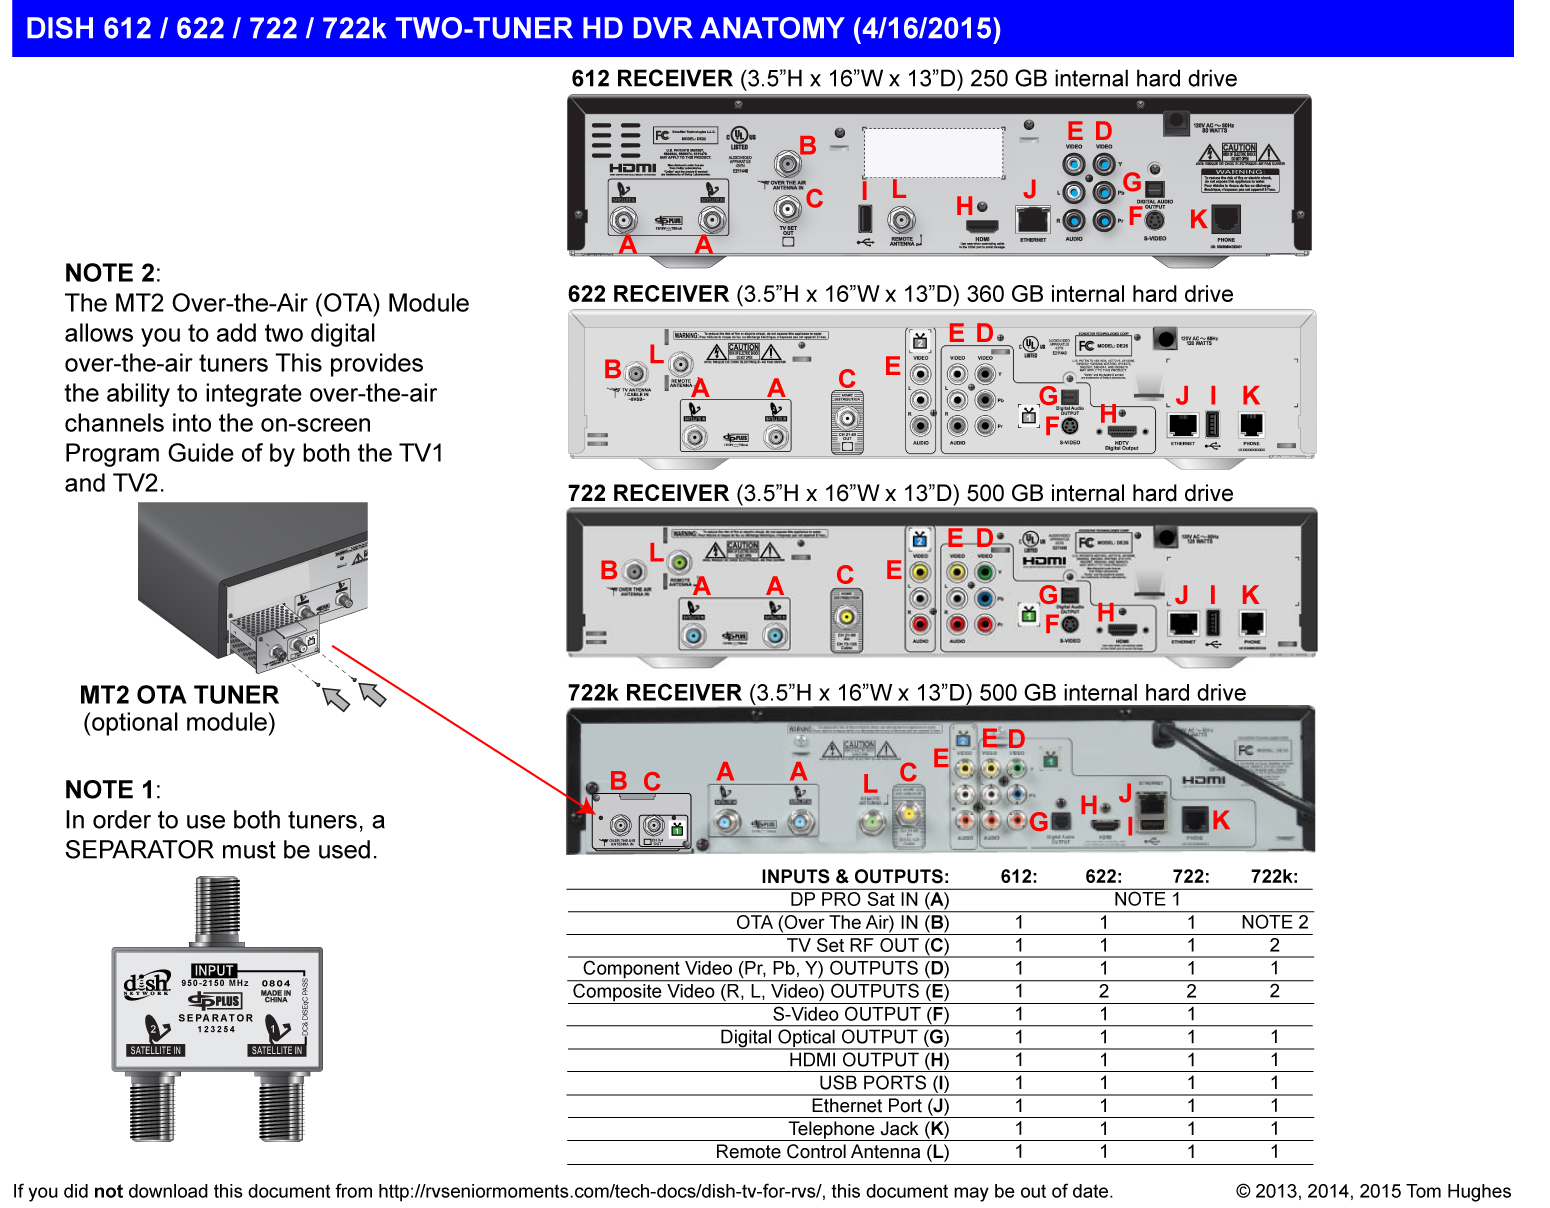 dish 4 wally wiring diagrams dish tv for rvs | rvseniormoments dish lnb cable wiring diagrams #1